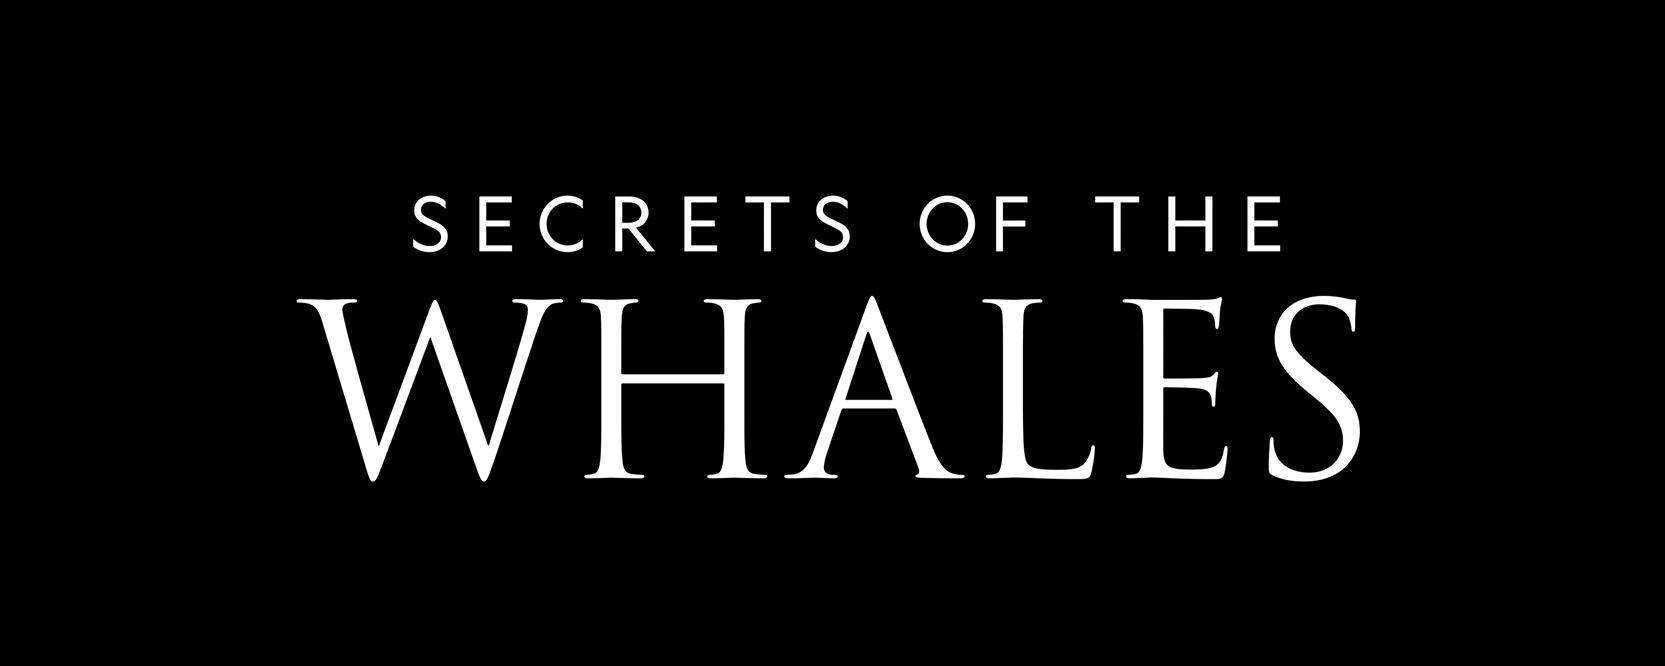 """FOR THE FIRST TIME, A SPERM WHALE CALF IS RECORDED NURSING IN NEW CLIP FROM THE DISNEY+ ORIGINAL SERIES """"SECRETS OF THE WHALES"""""""